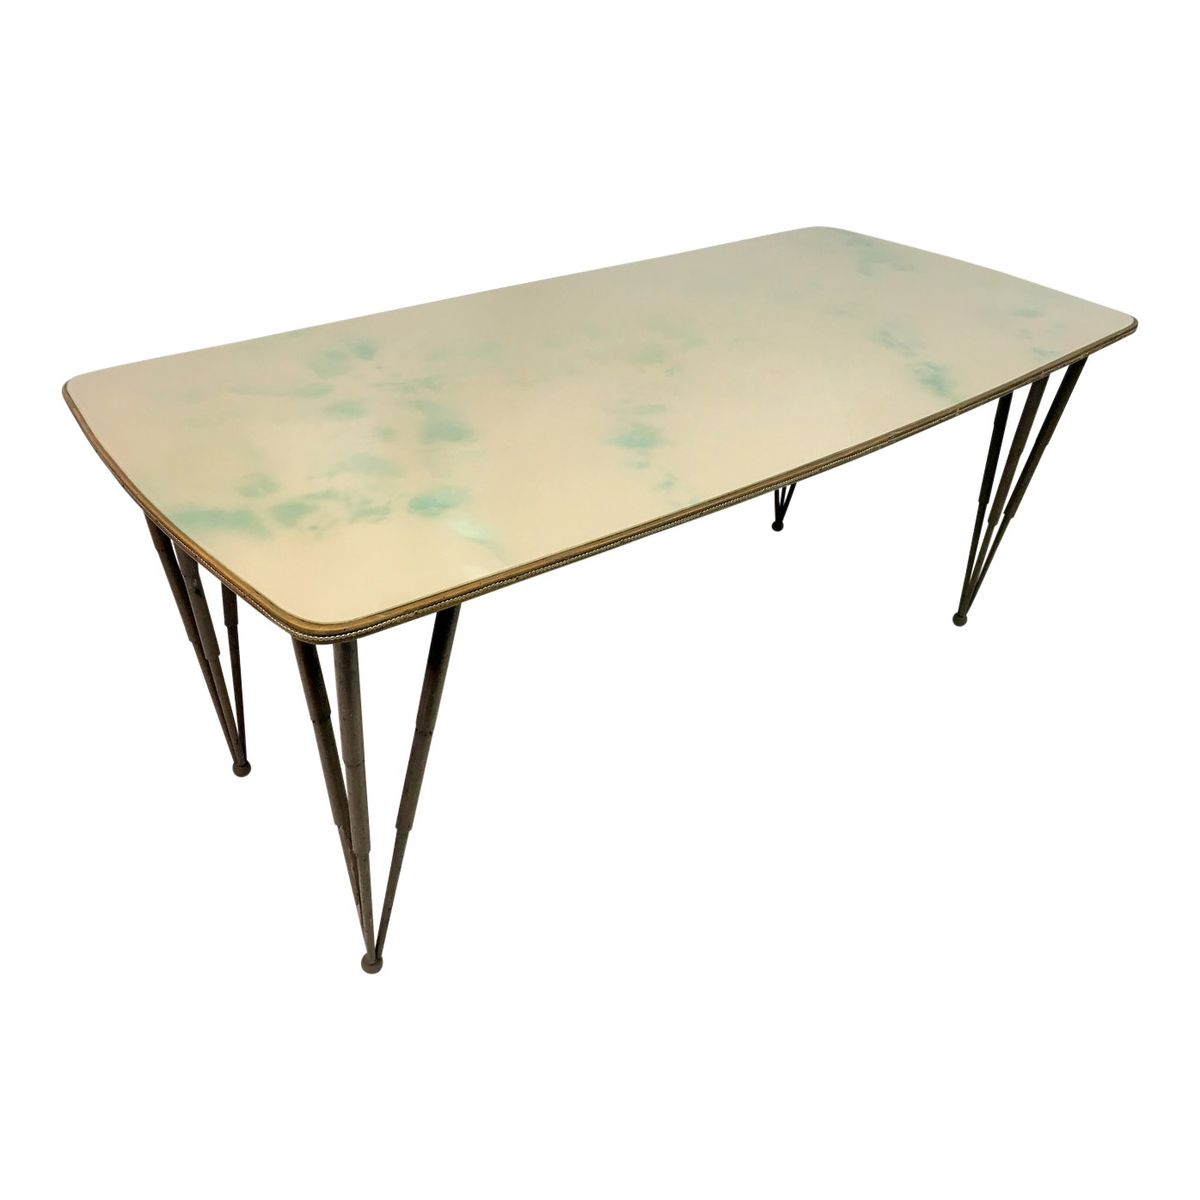 Italian Glass Topped Dining Table With Metal Legs 1950s For Sale At Pamono